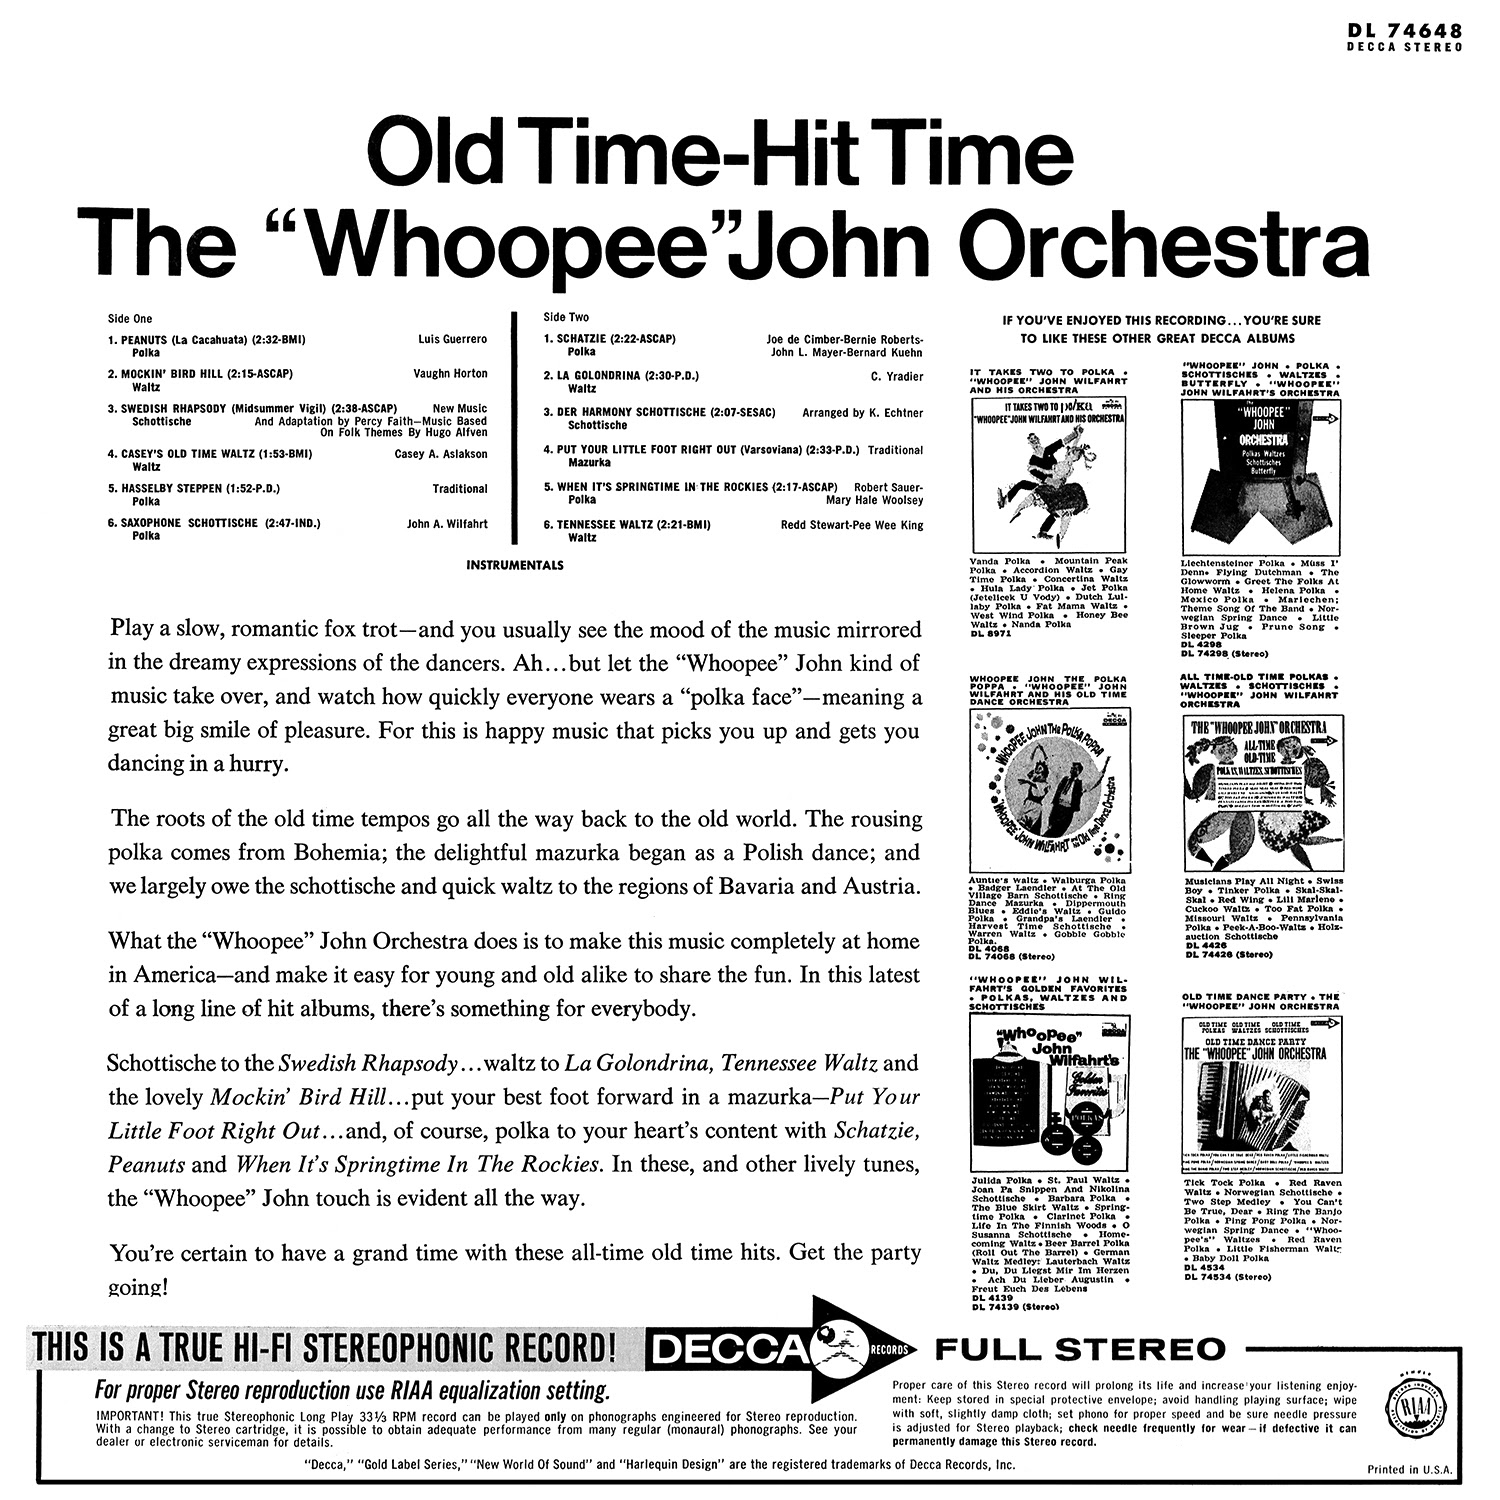 The Whoopee John Orchestra